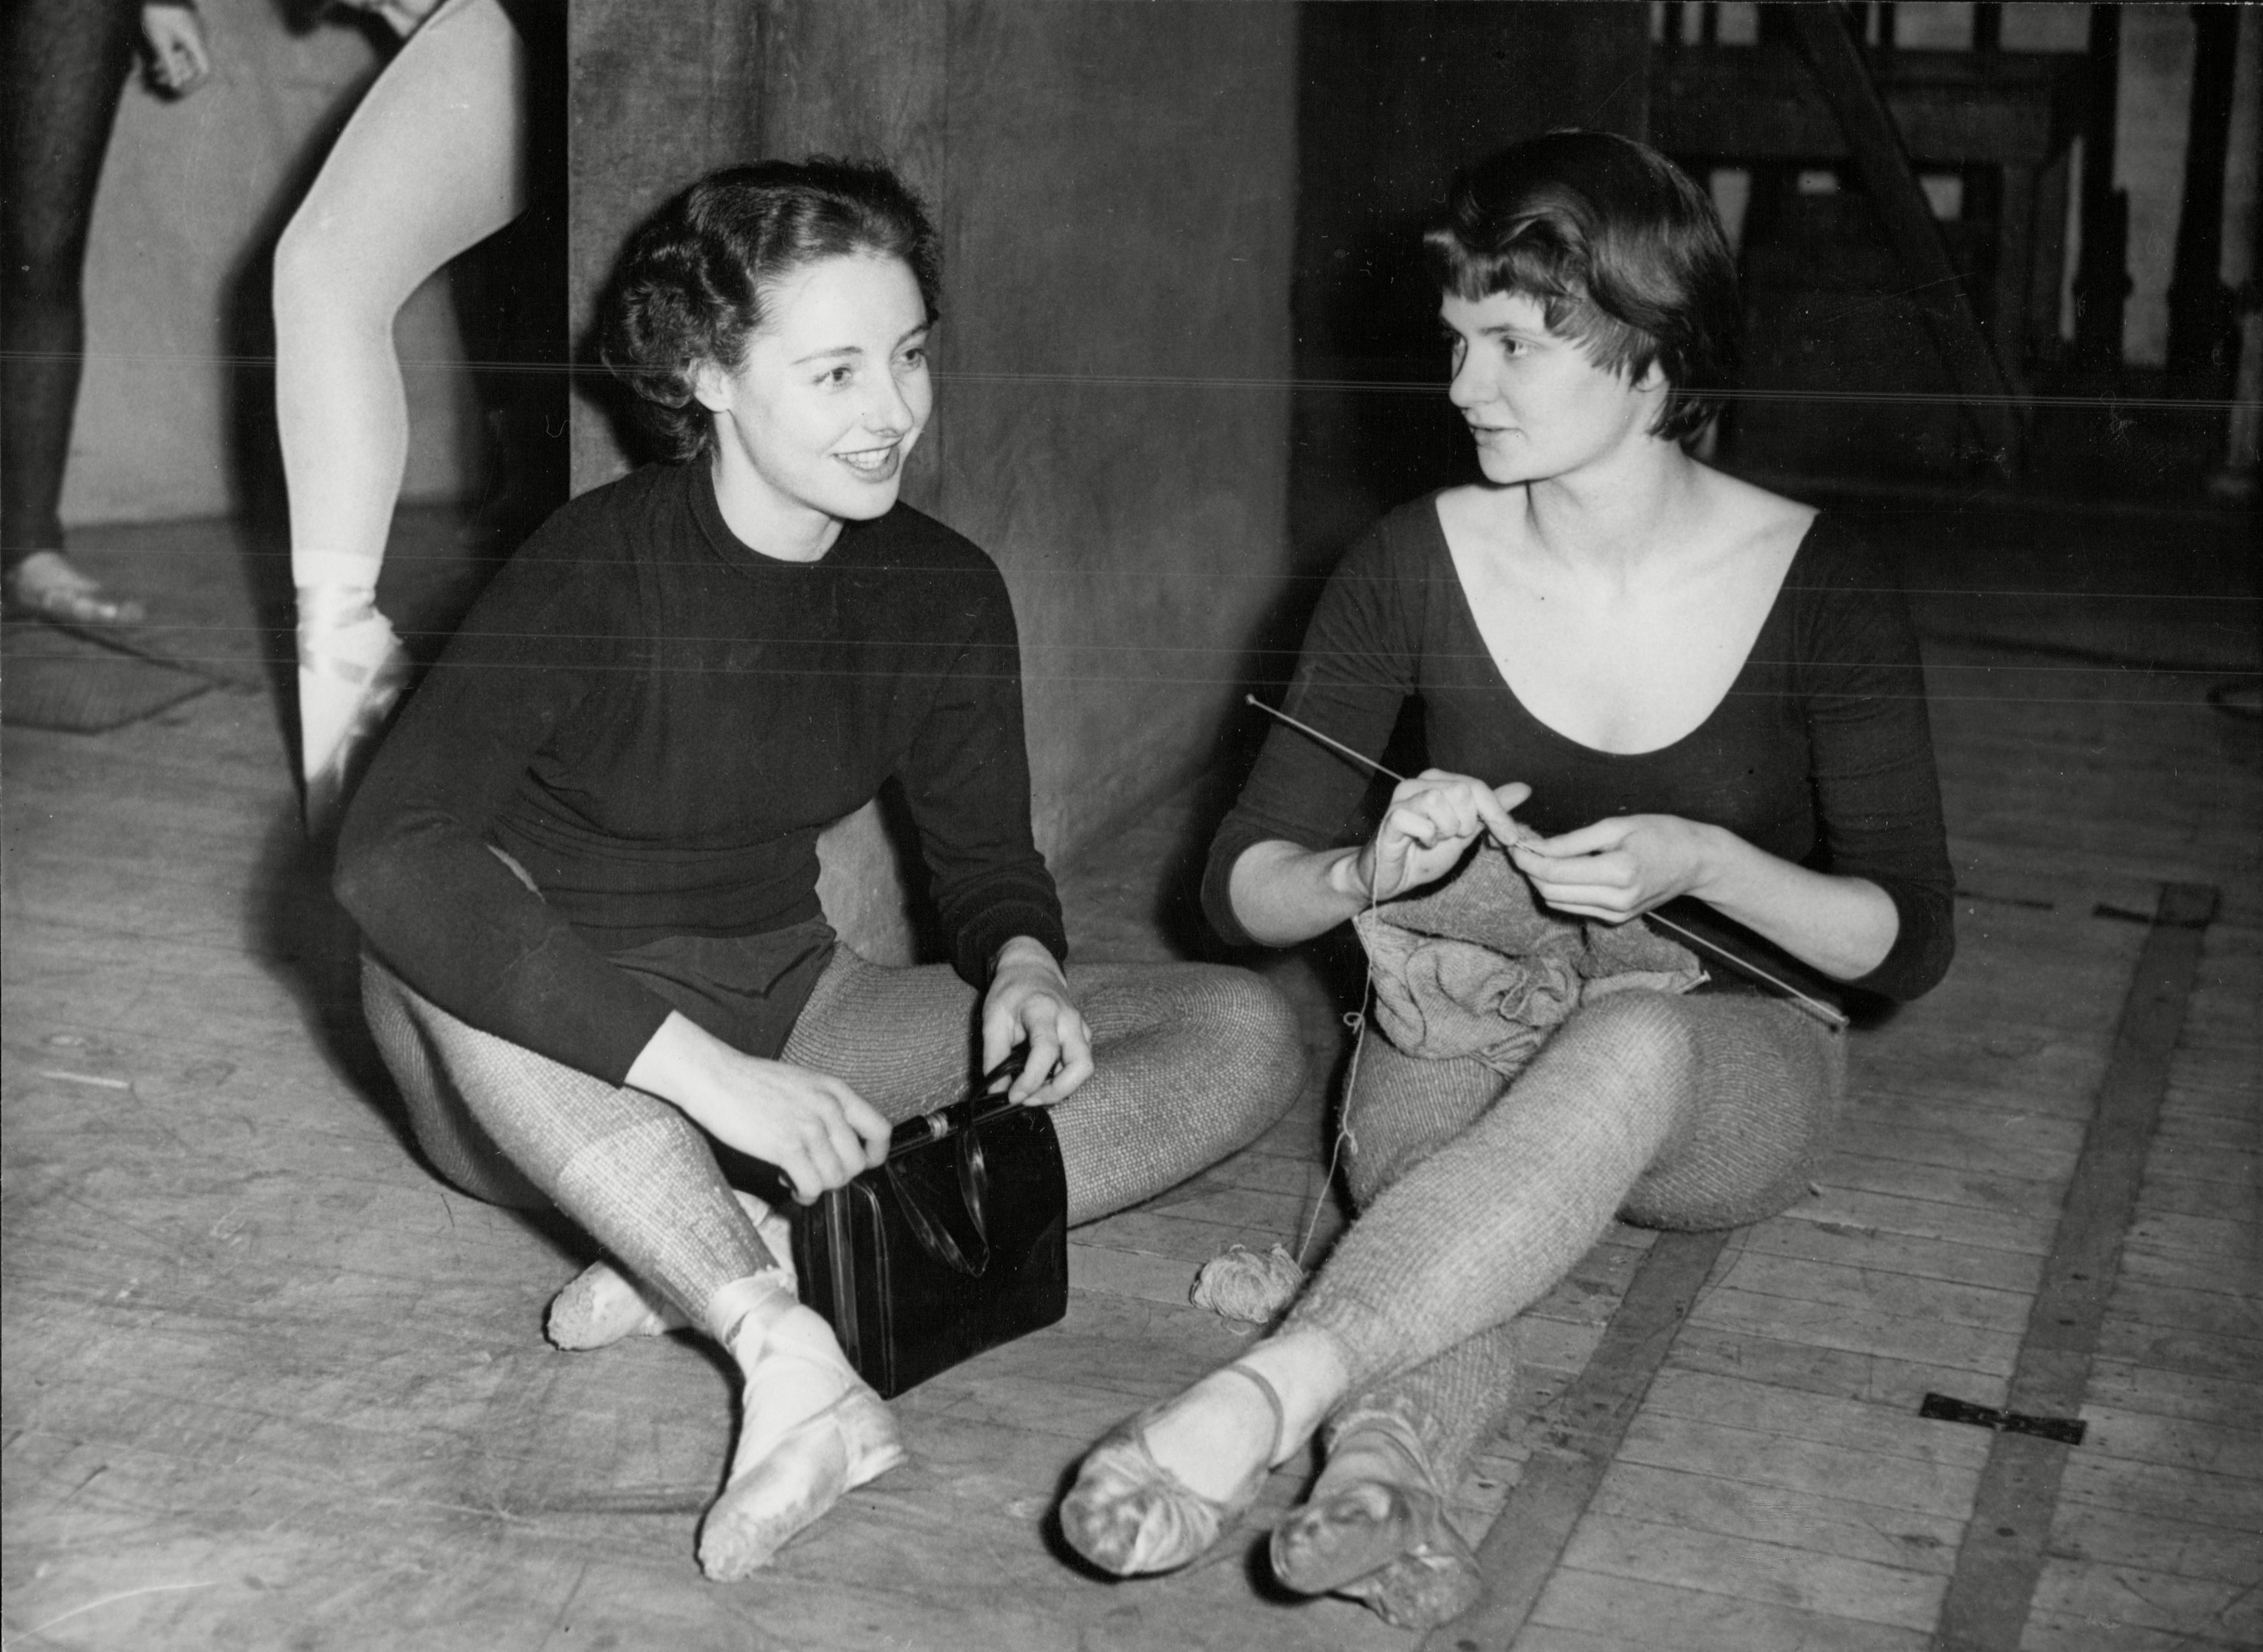 The Joy Of People Knitting In The 20th Century Flashbak